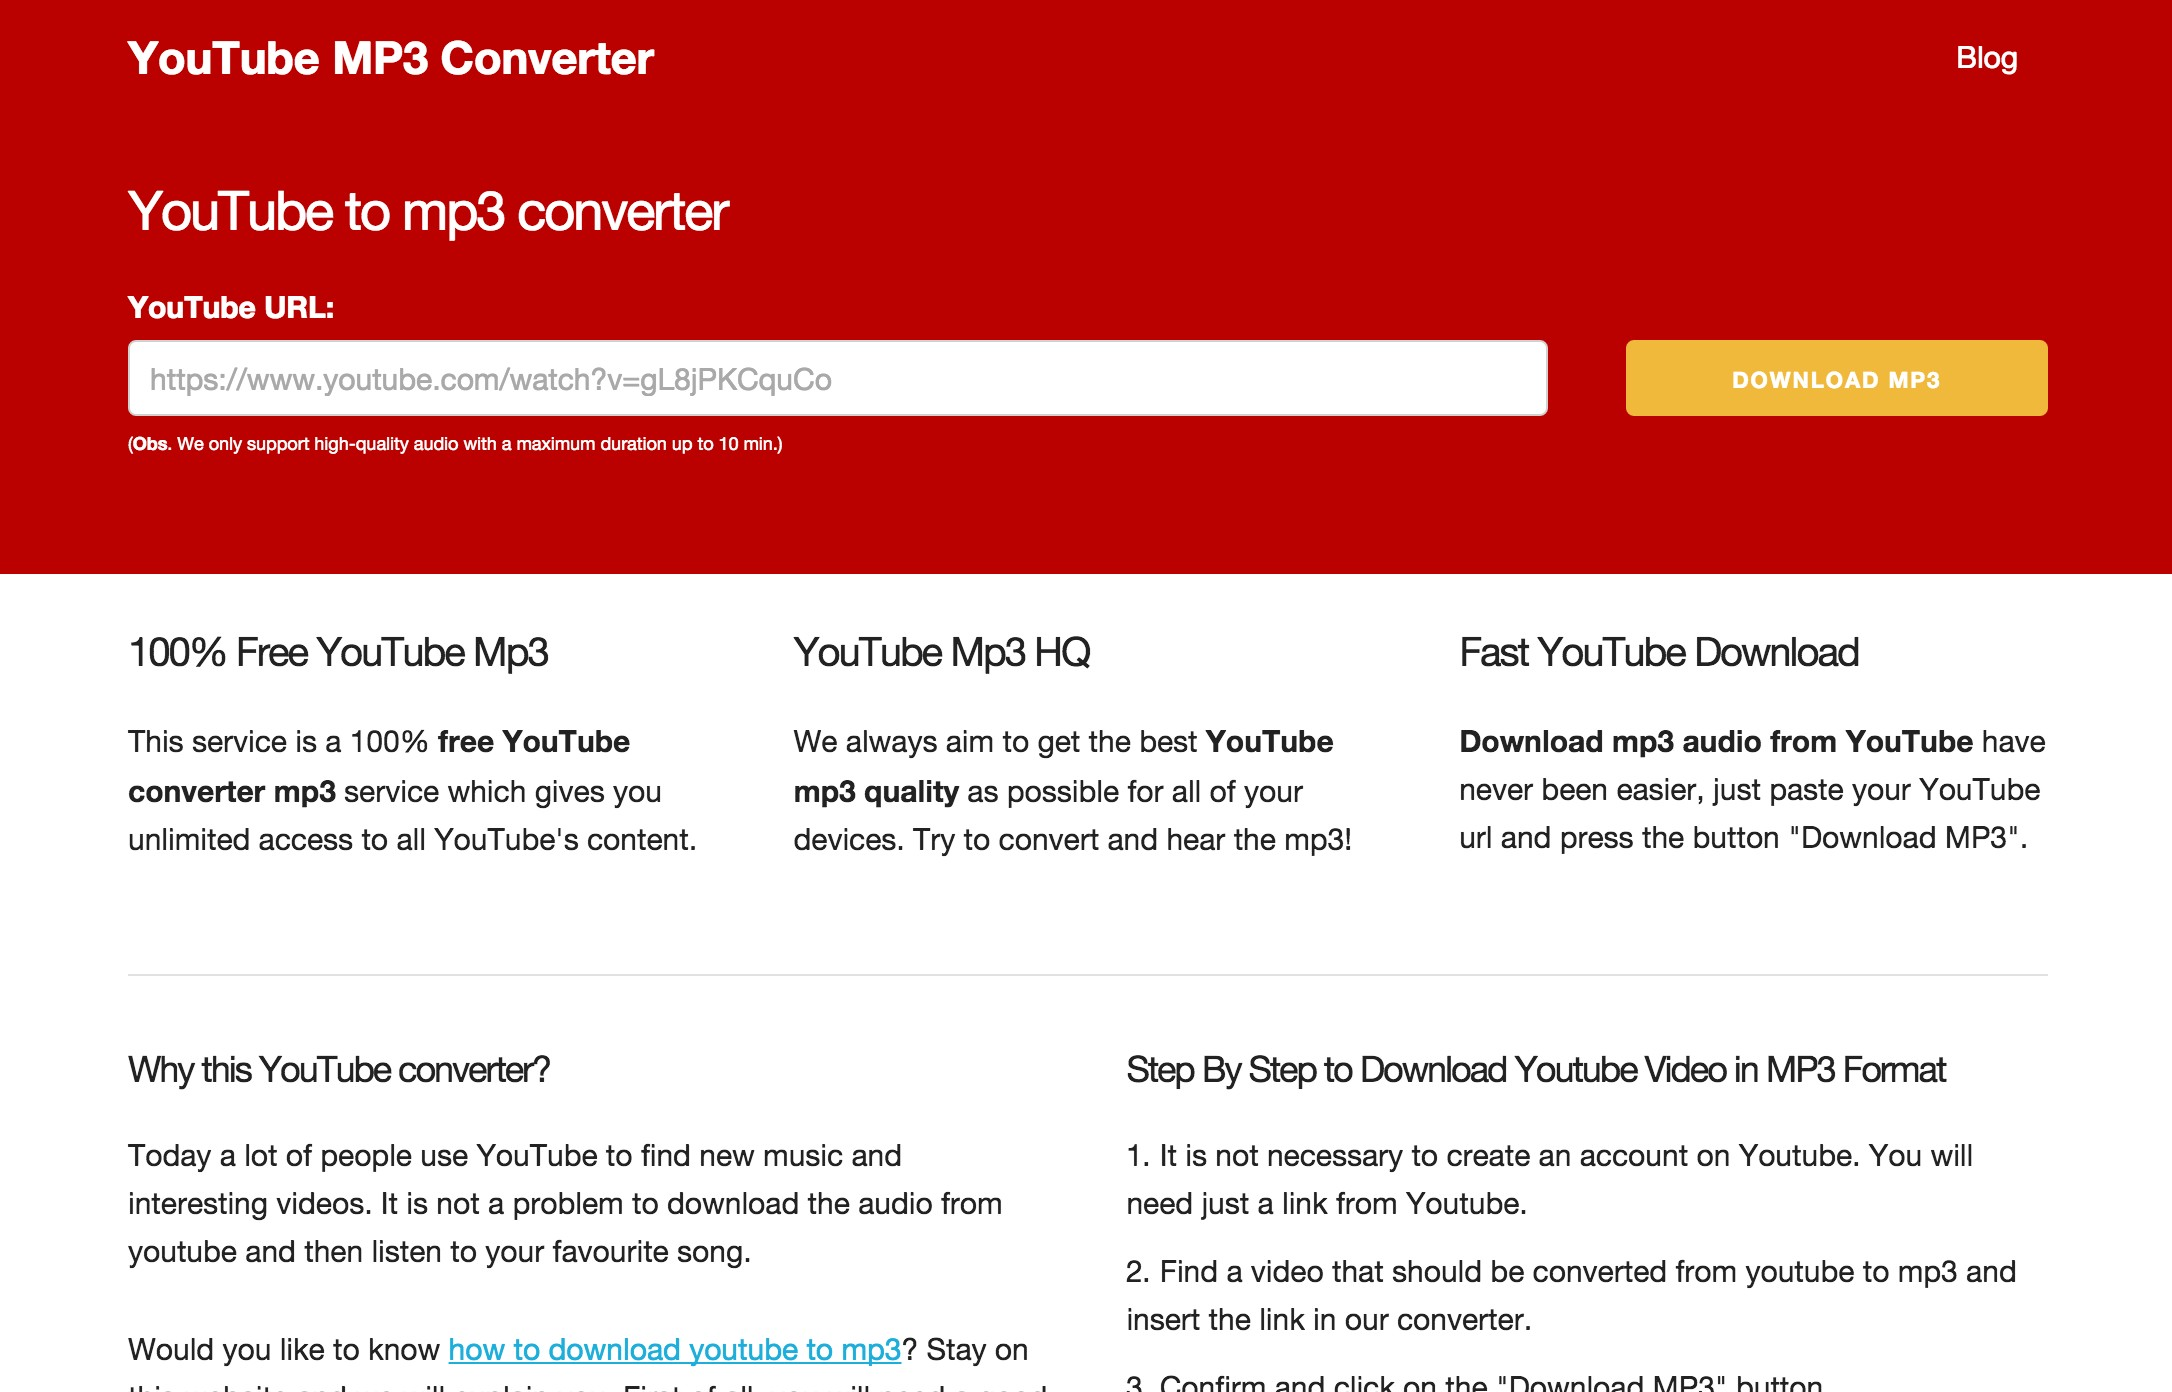 Youtube MP3 Converter - An easy way to grab mp3 files from